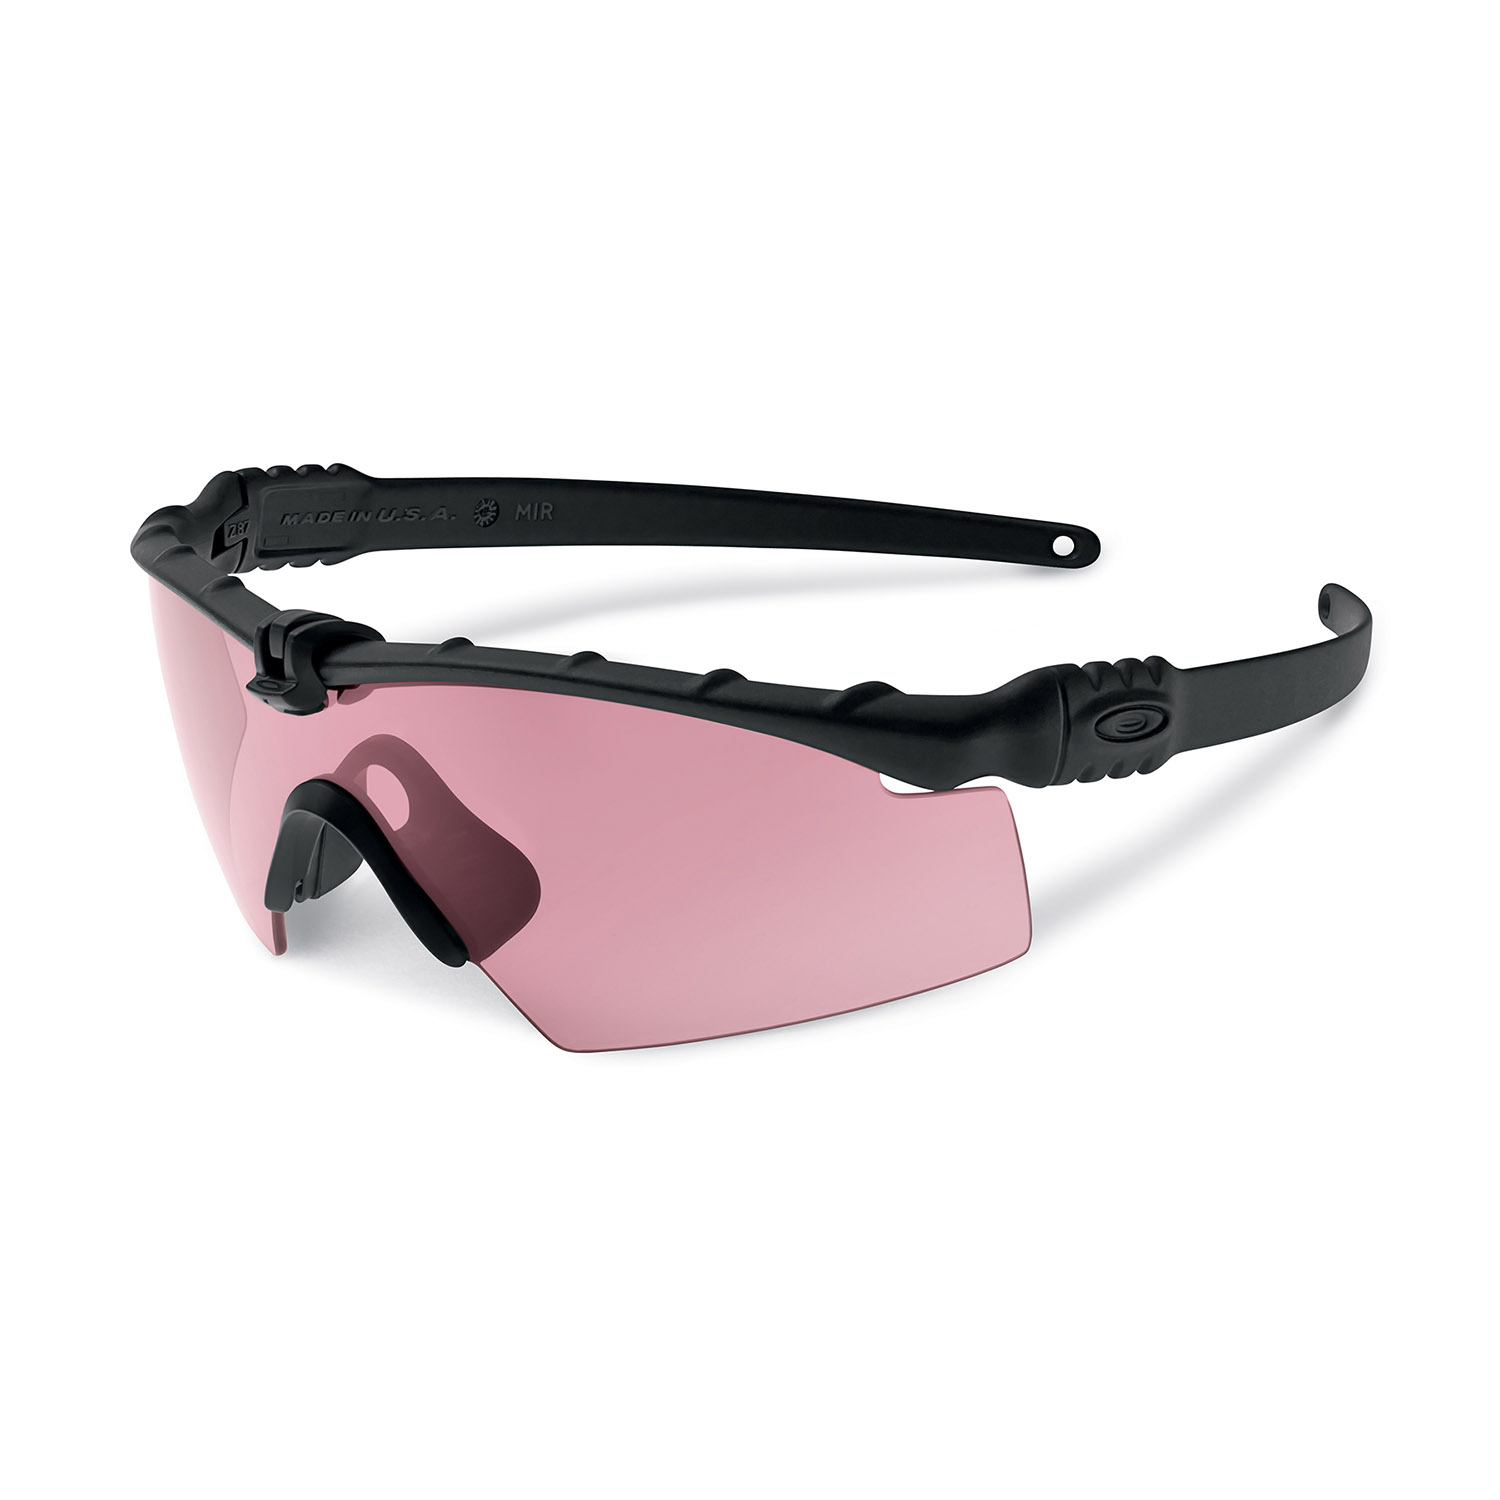 Oakley SI Prizm - Accessories - Accessories - News - all4shooters.com